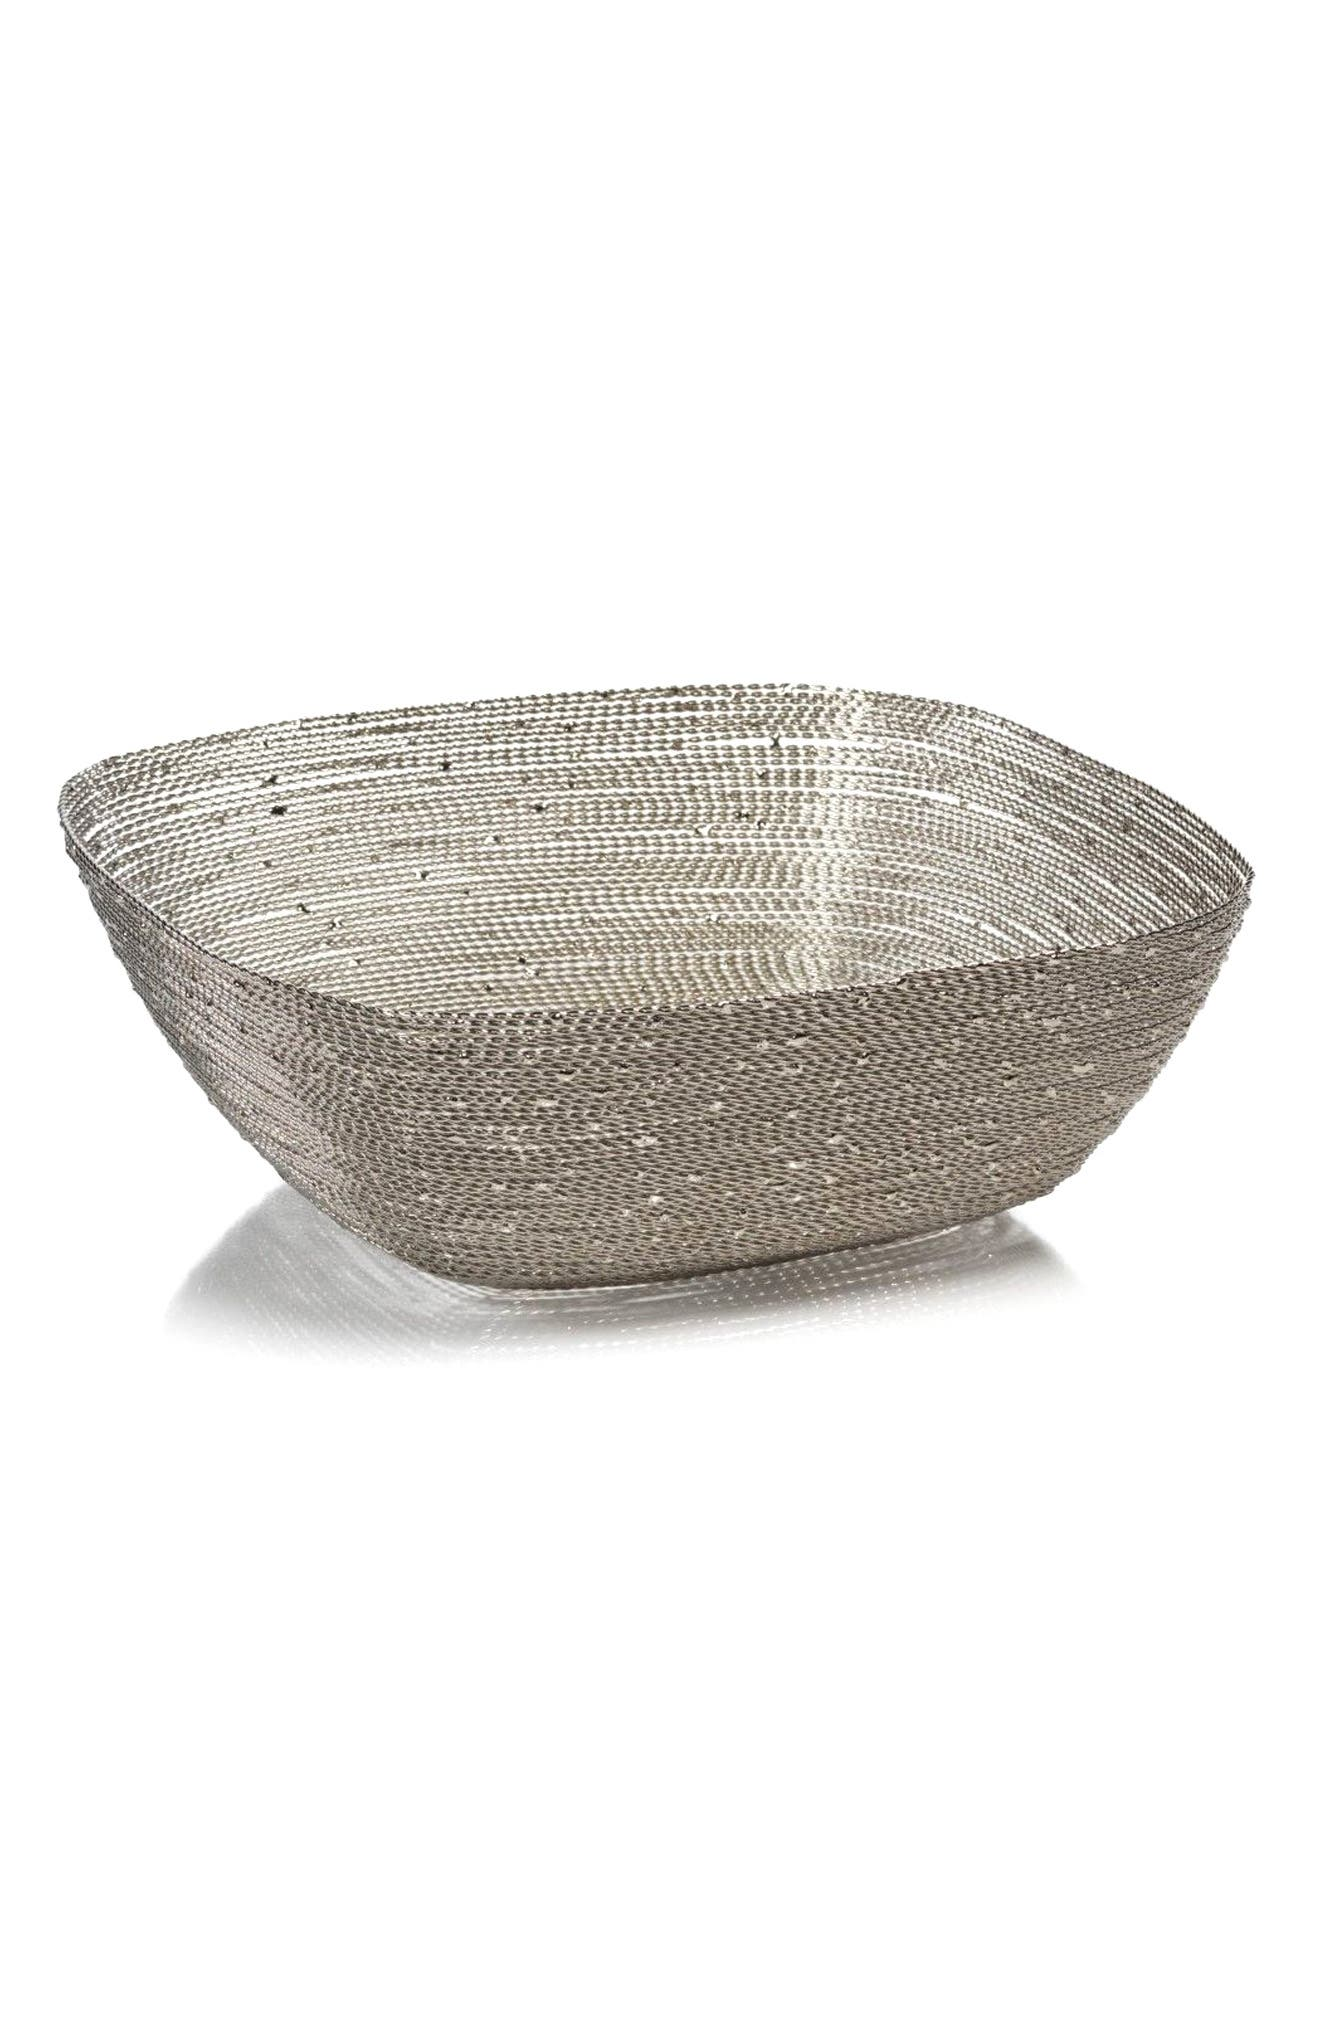 Zulu Large Square Woven Wire Basket,                         Main,                         color, 040